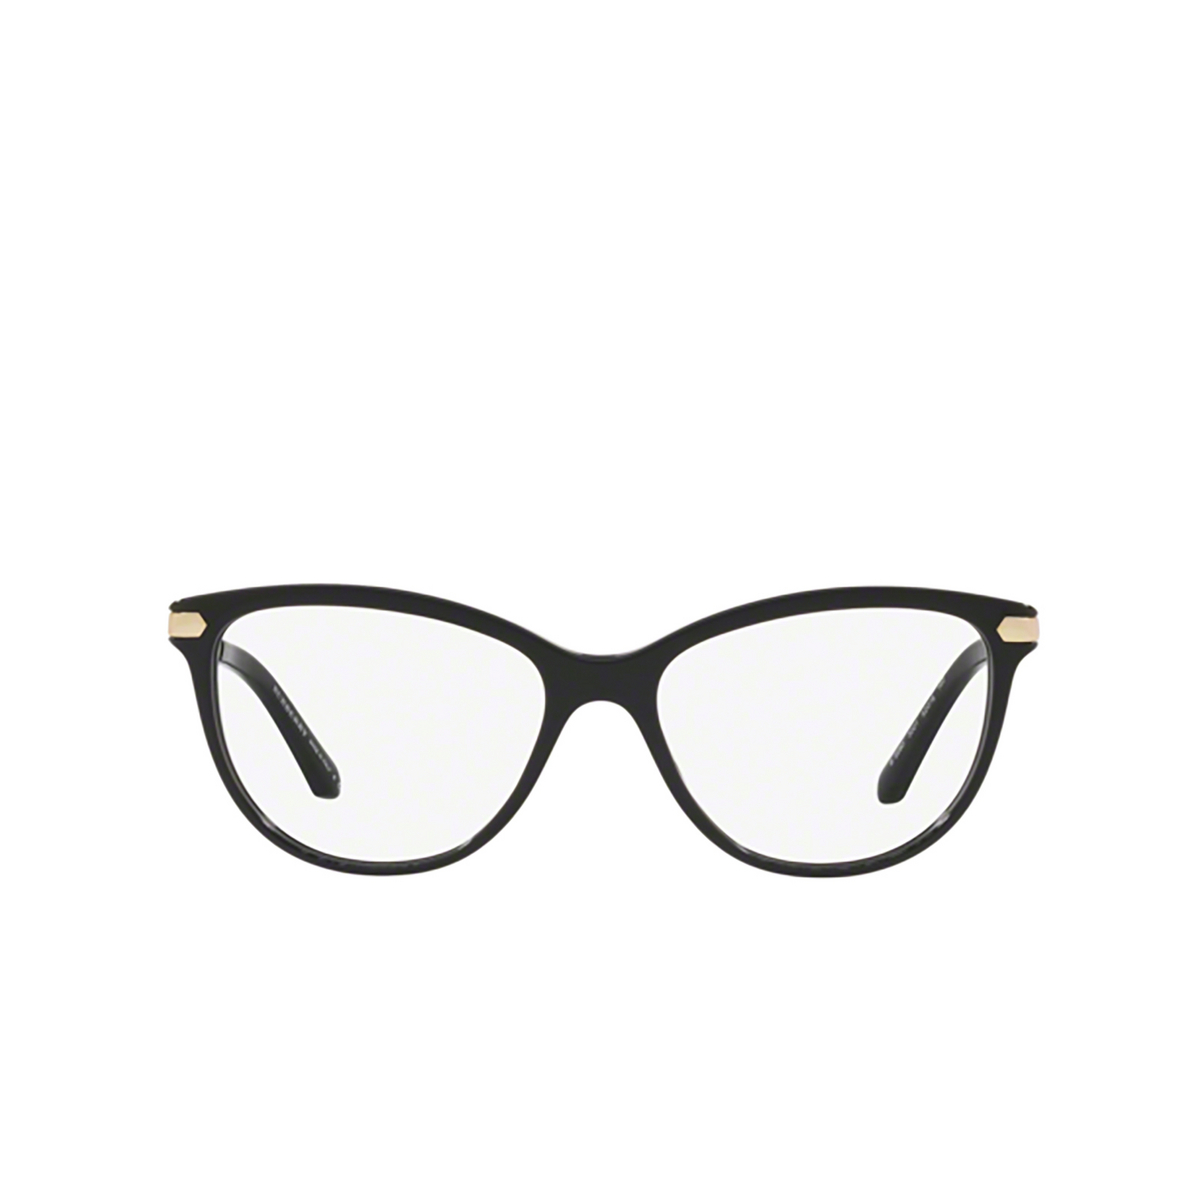 Burberry® Cat-eye Eyeglasses: BE2280 color Black 3001 - front view.